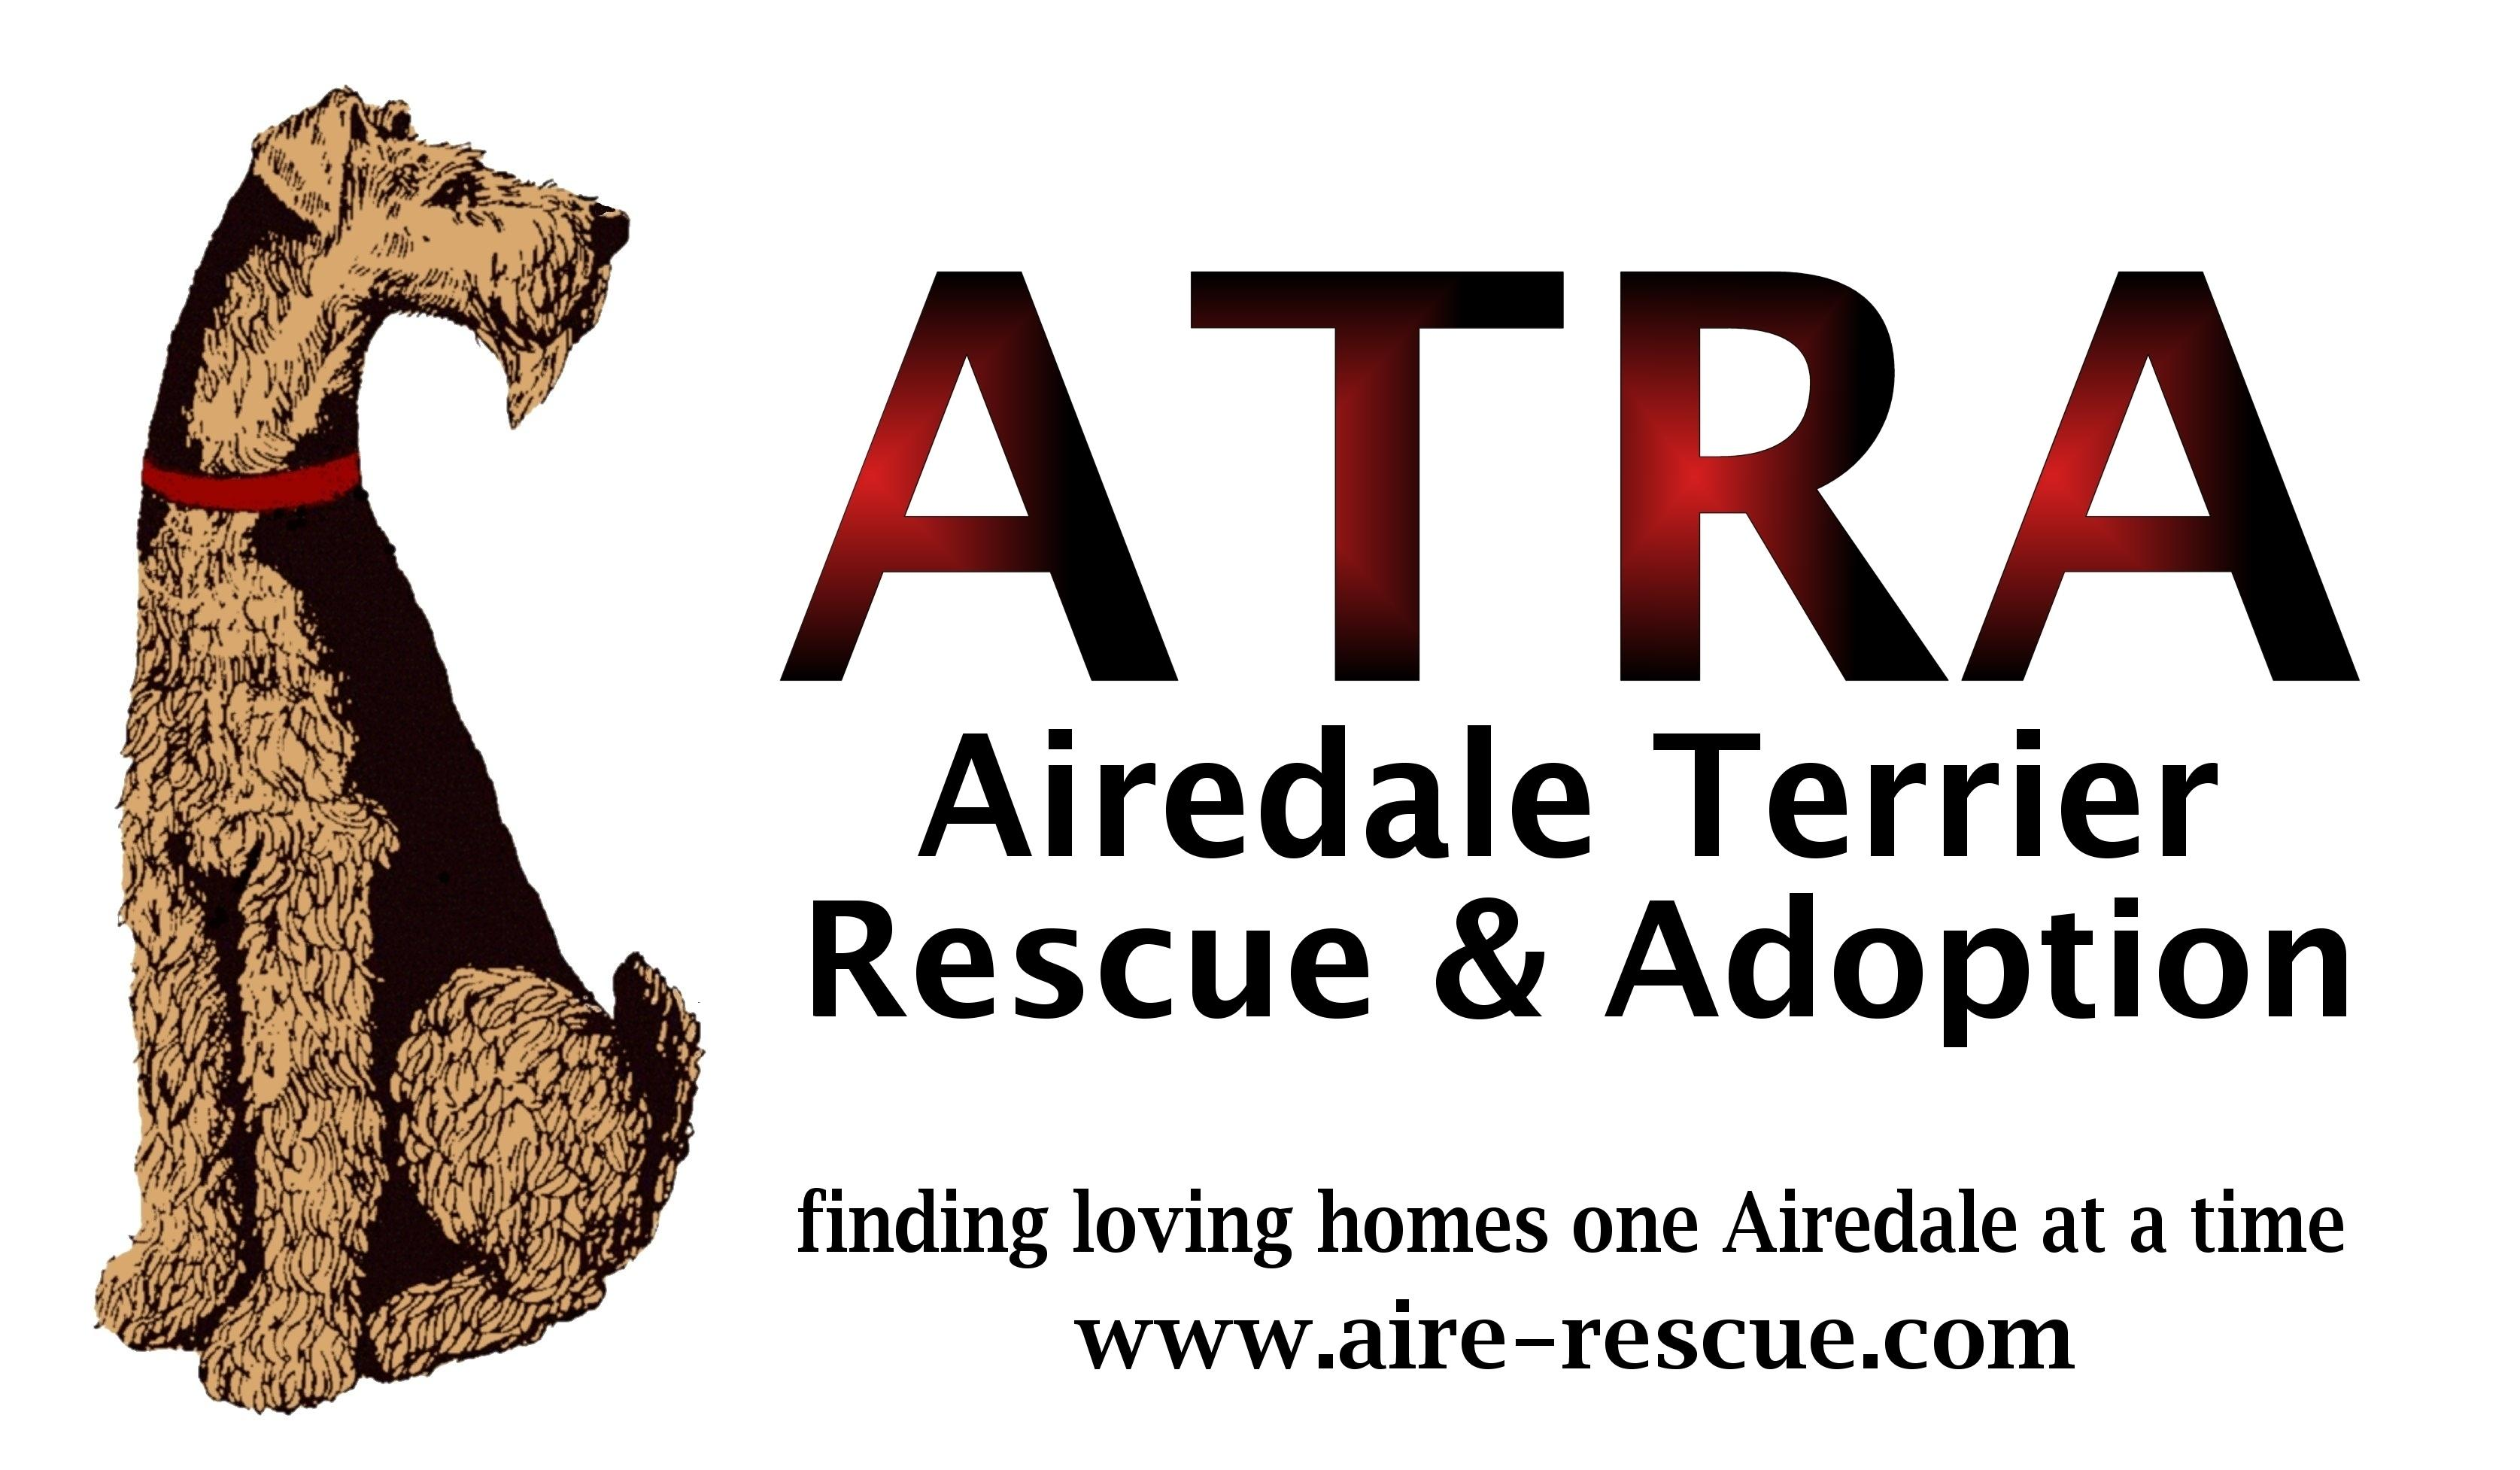 Airedale Terrier Rescue & Adoption